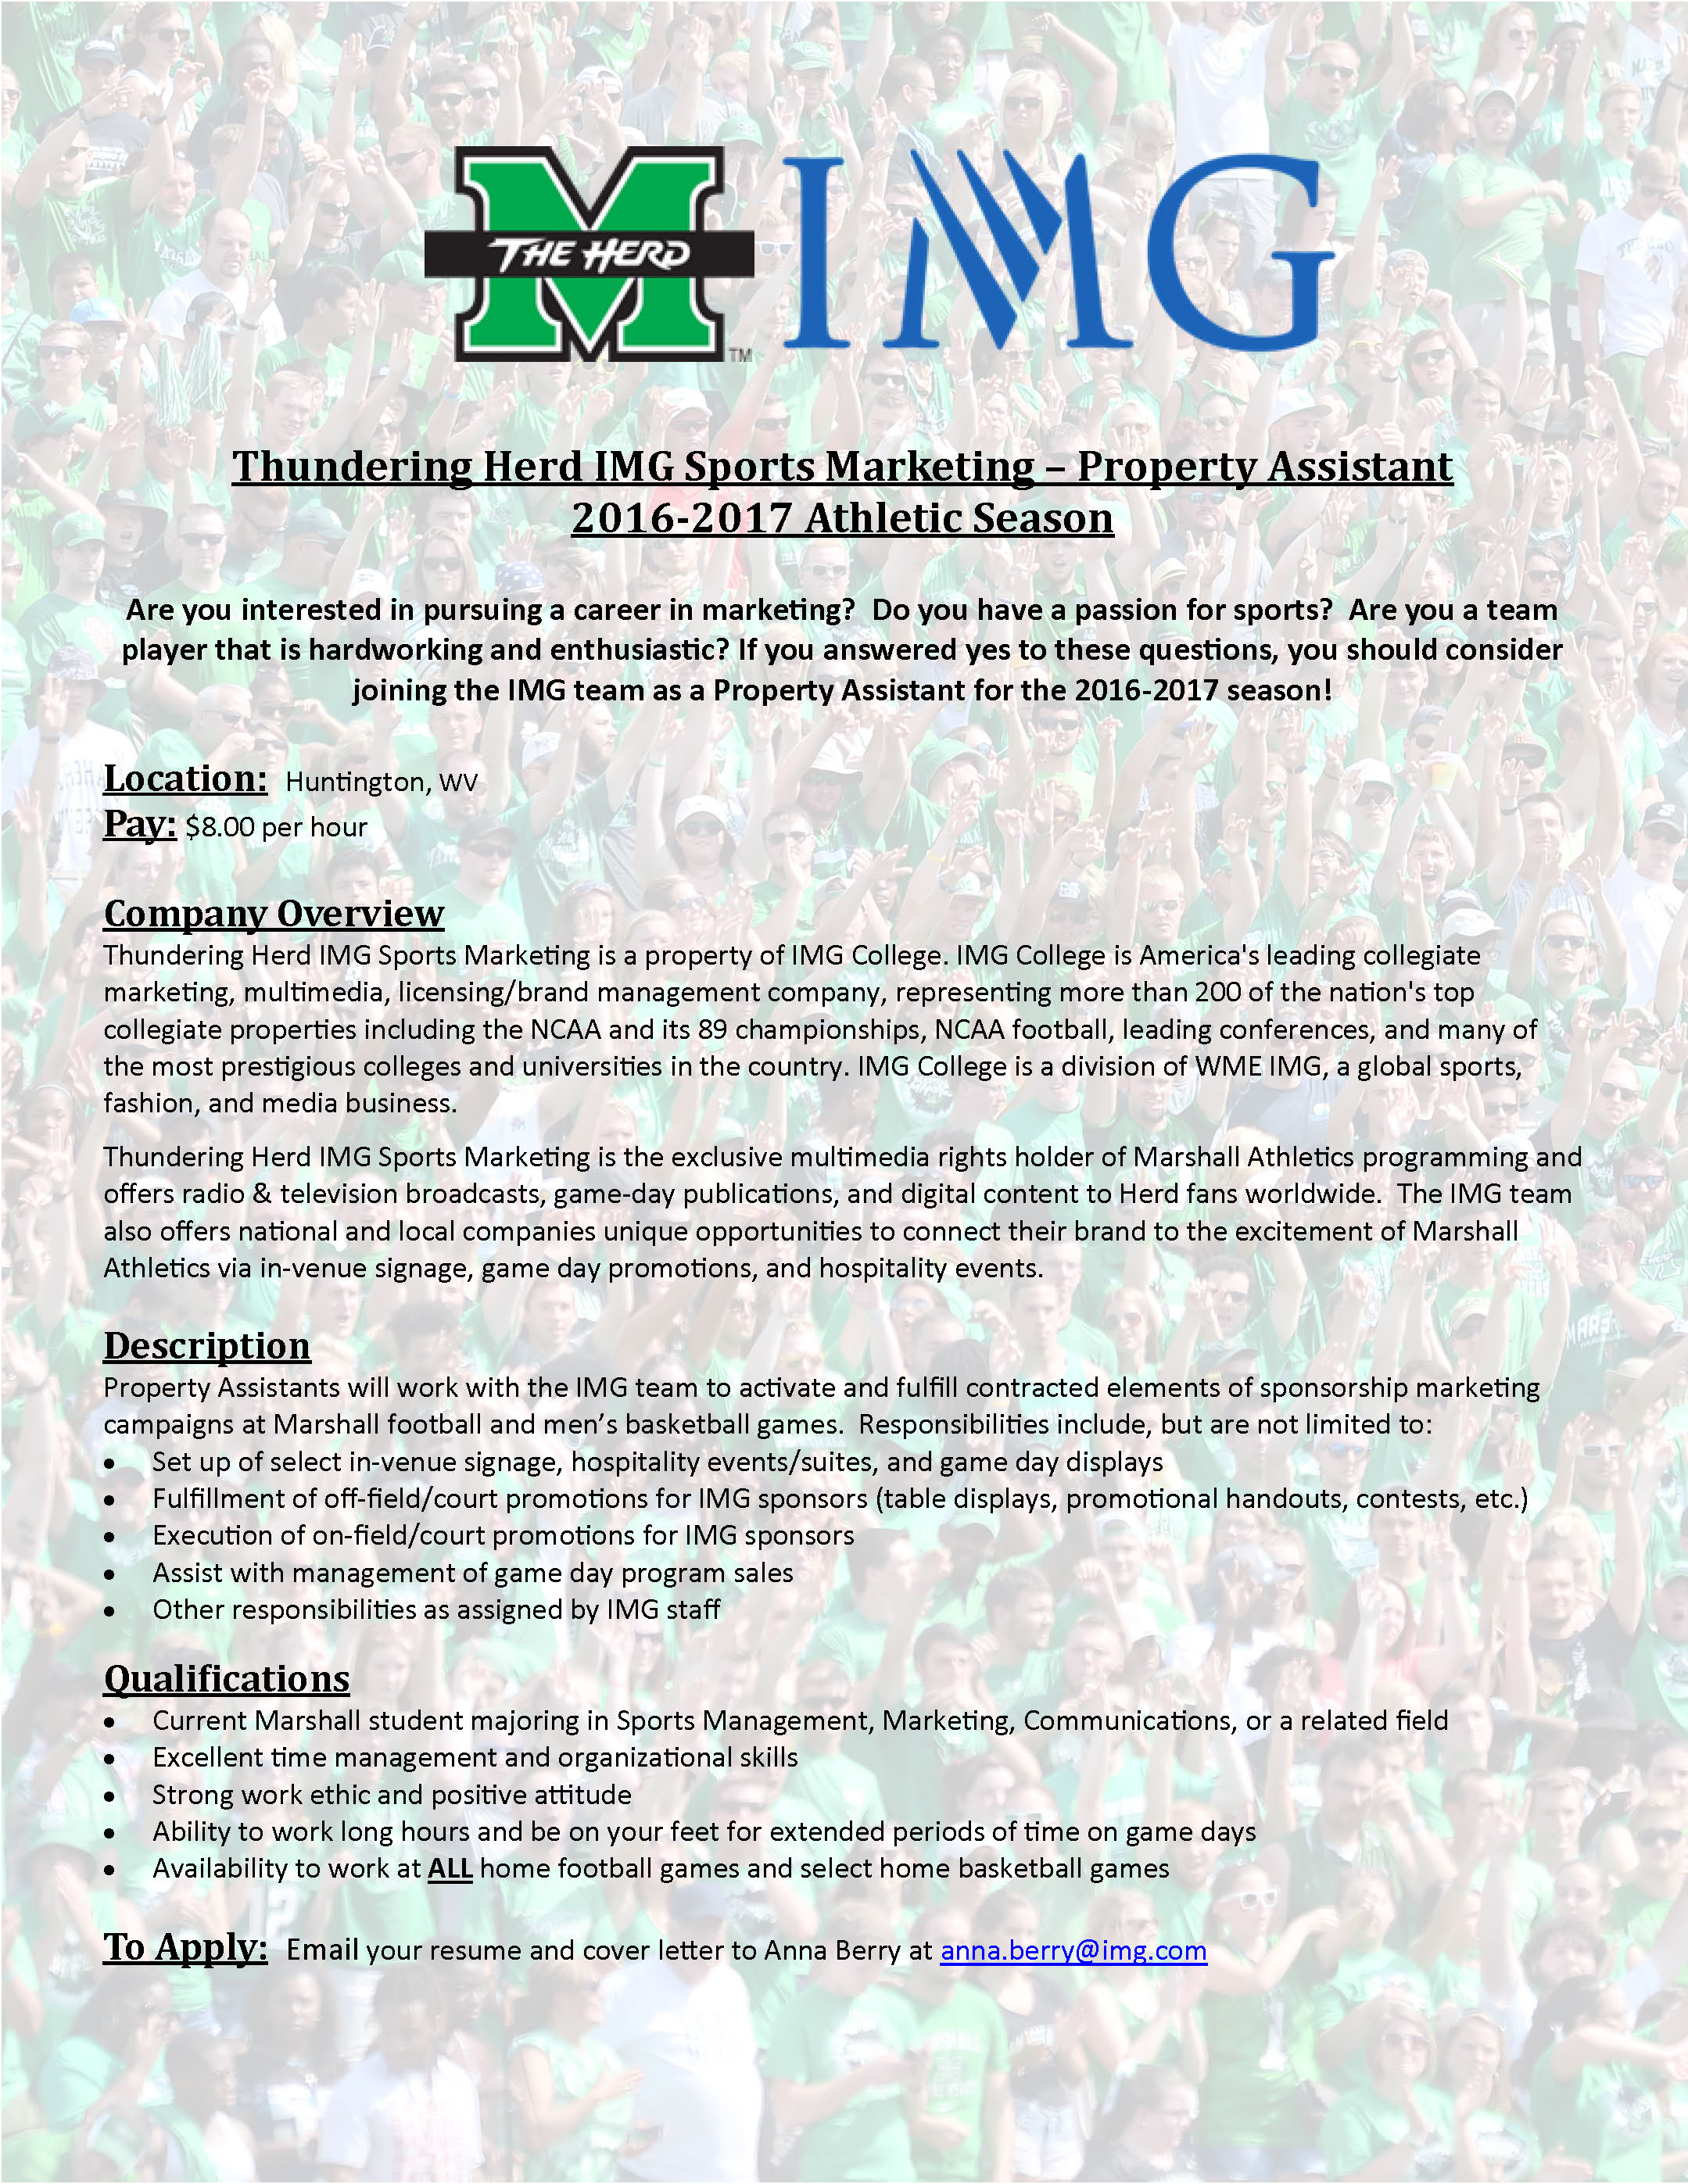 img sports flyer - Are You A Tram Player Ability To Work In A Team